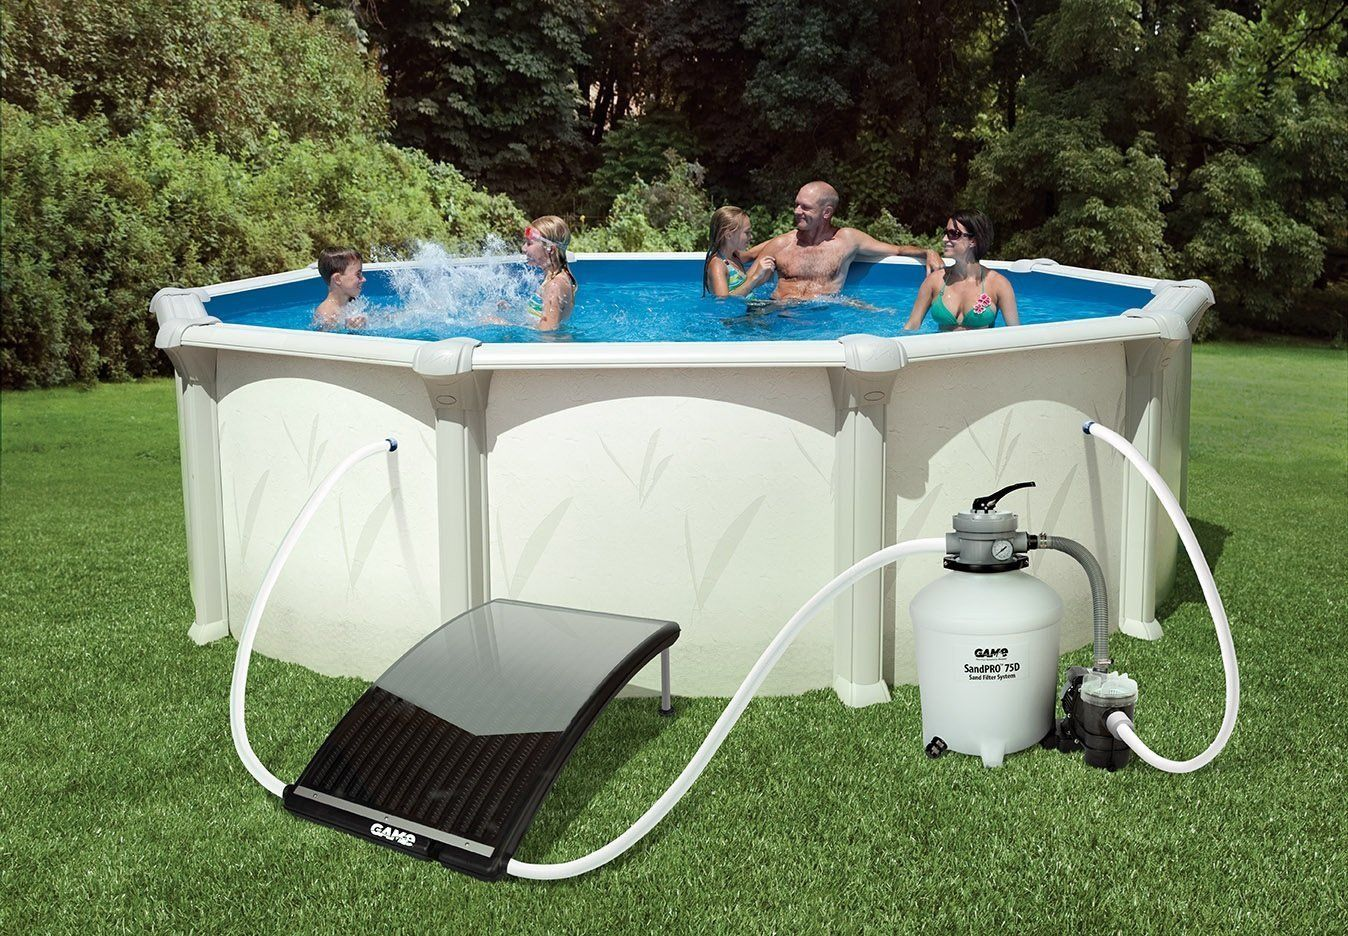 Zwembad Heater Intex Pool Solarpro Curve Single Solar Pool Heater For Pools Pool4721